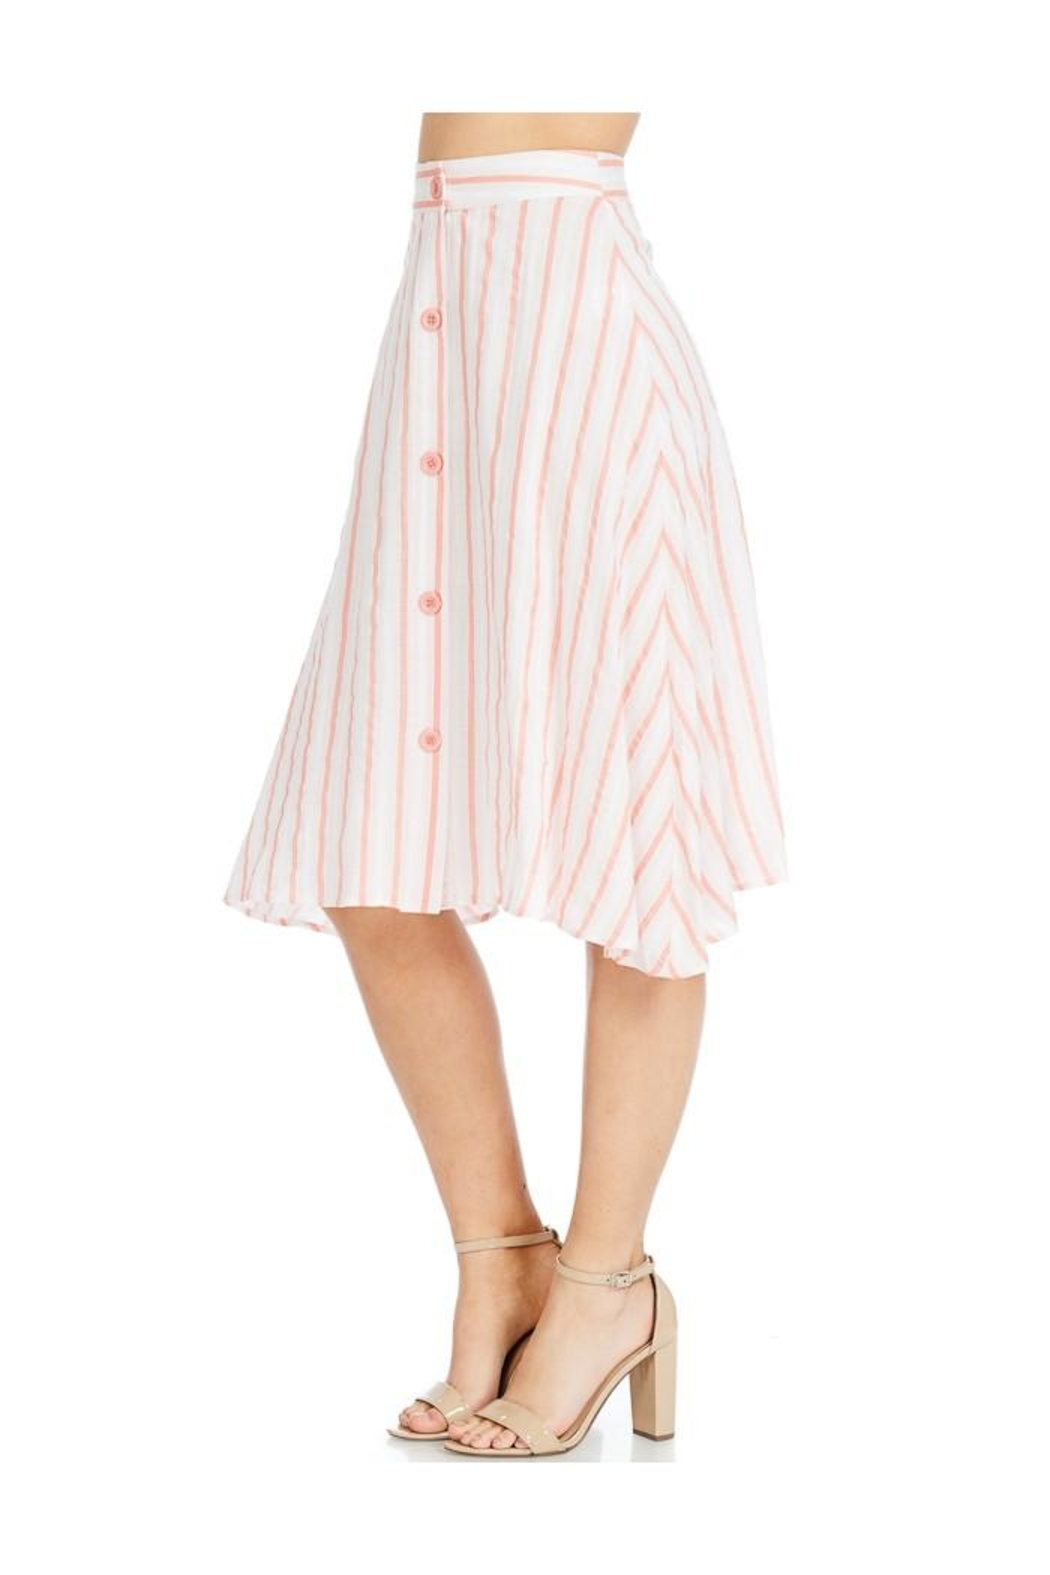 Miley and Molly Linen Stripe Button Front A-Line Midi Skirt - Front Full Image